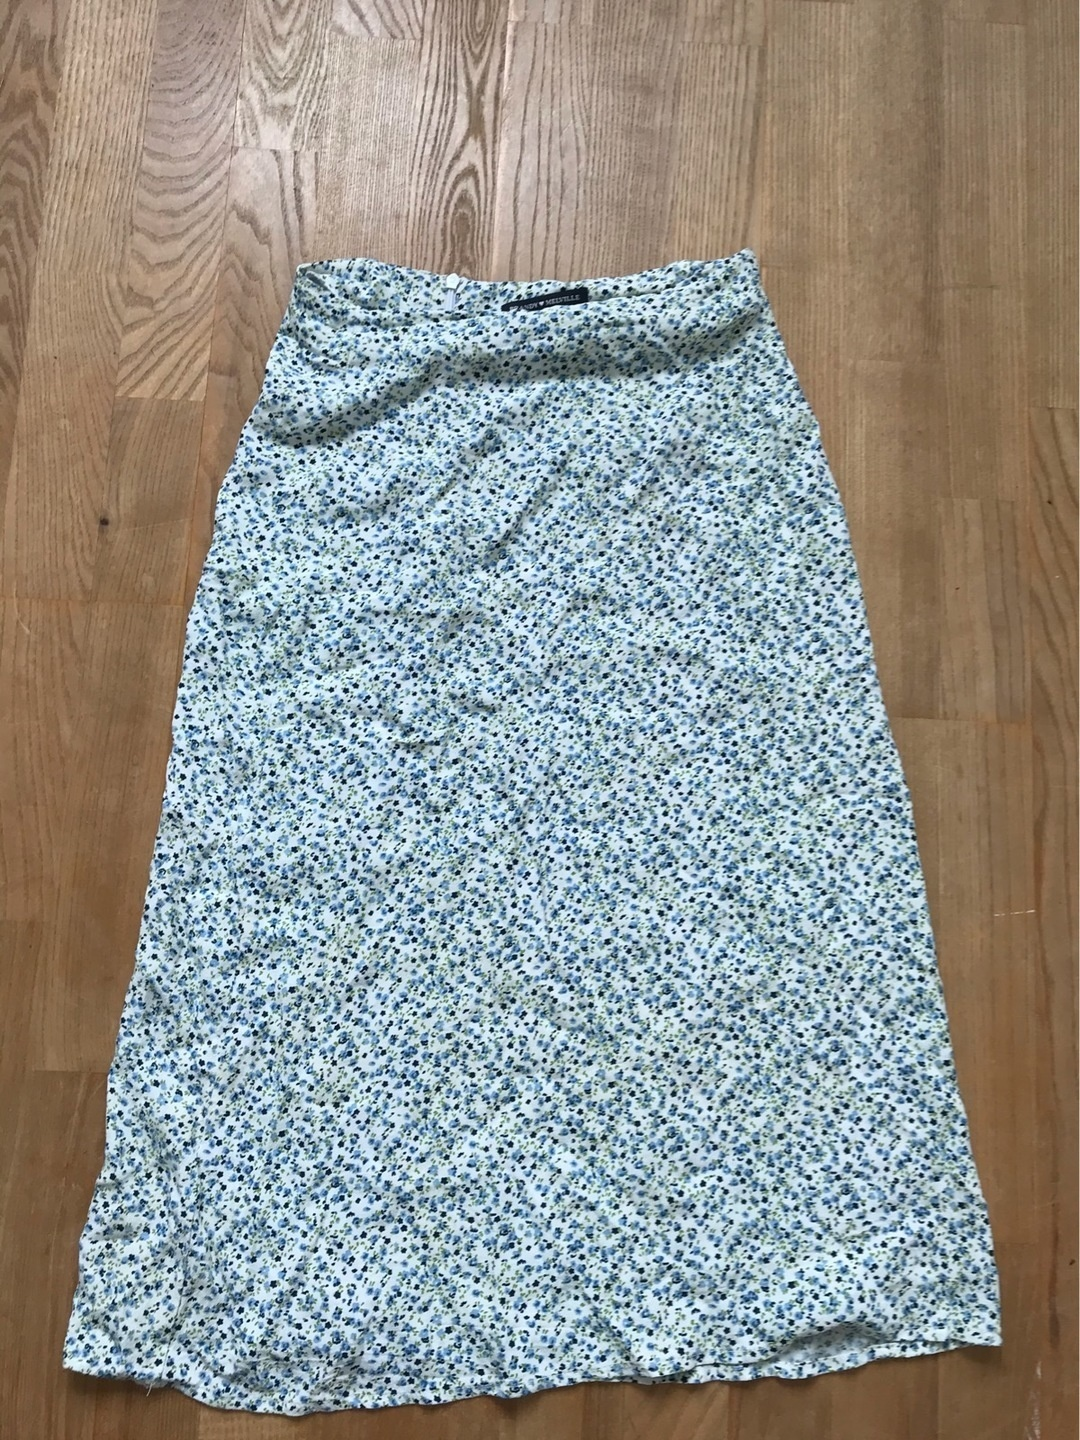 Women's skirts - BRANDY MELVILLE photo 1